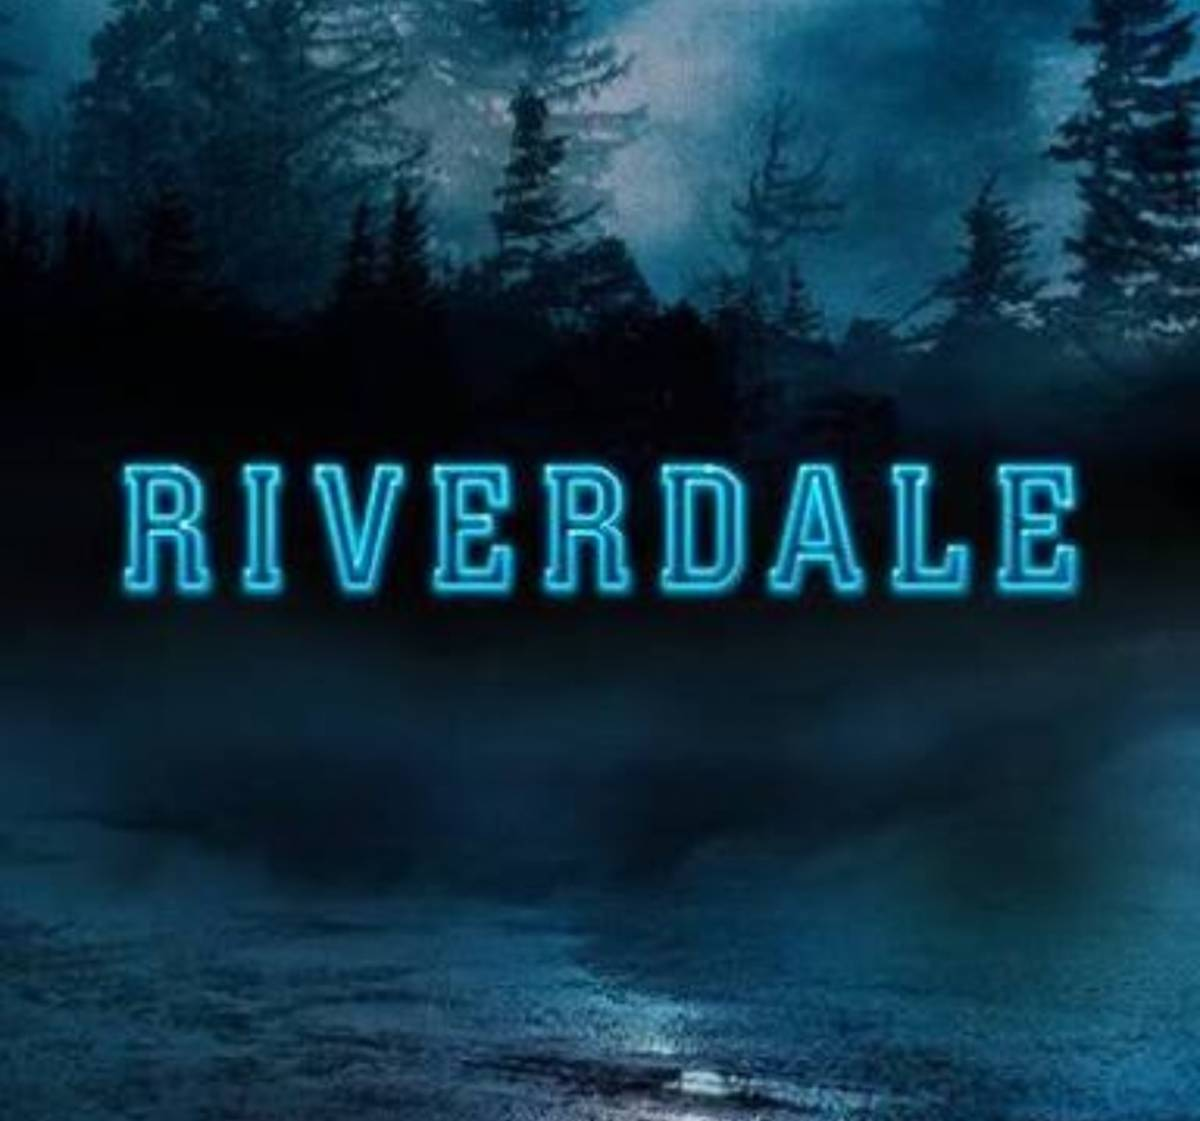 Riverdale Wallpaper: Which Riverdale Character Are You?